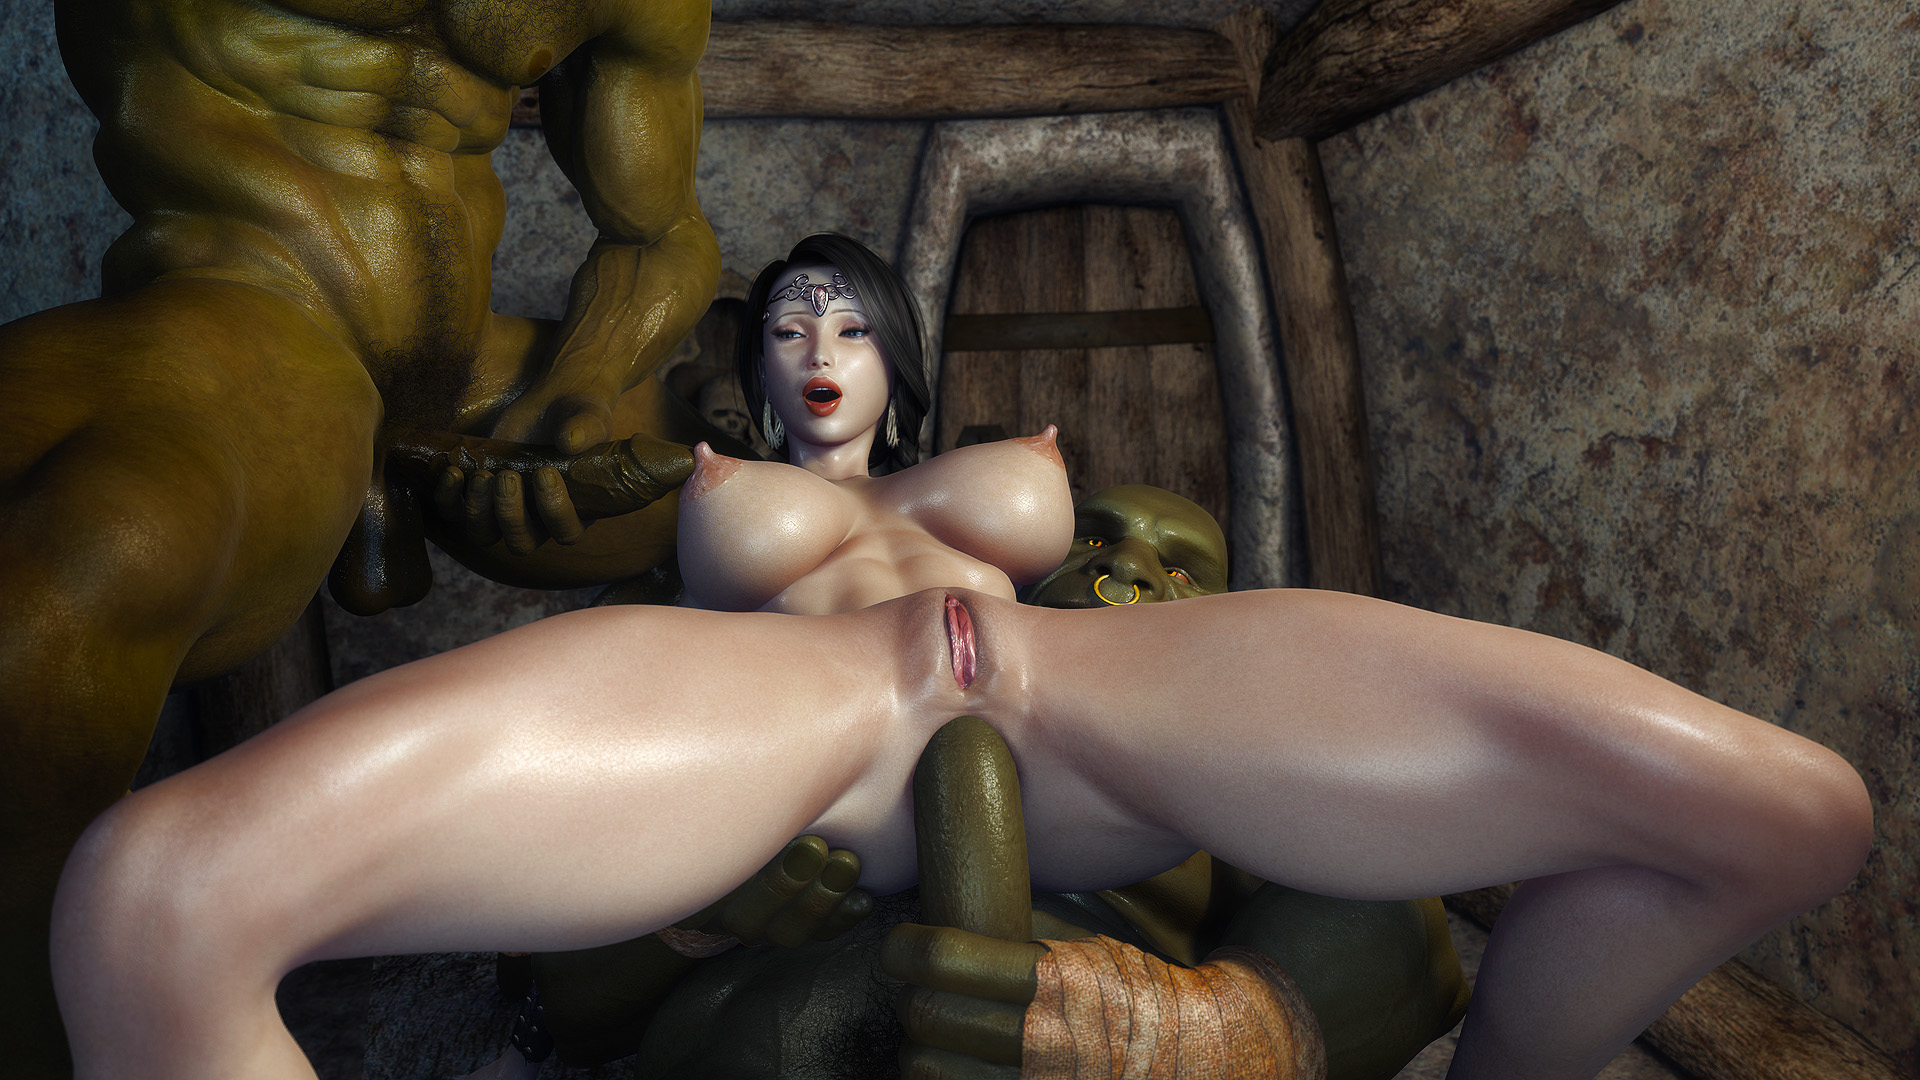 Free anime ogre sex movies adult photo